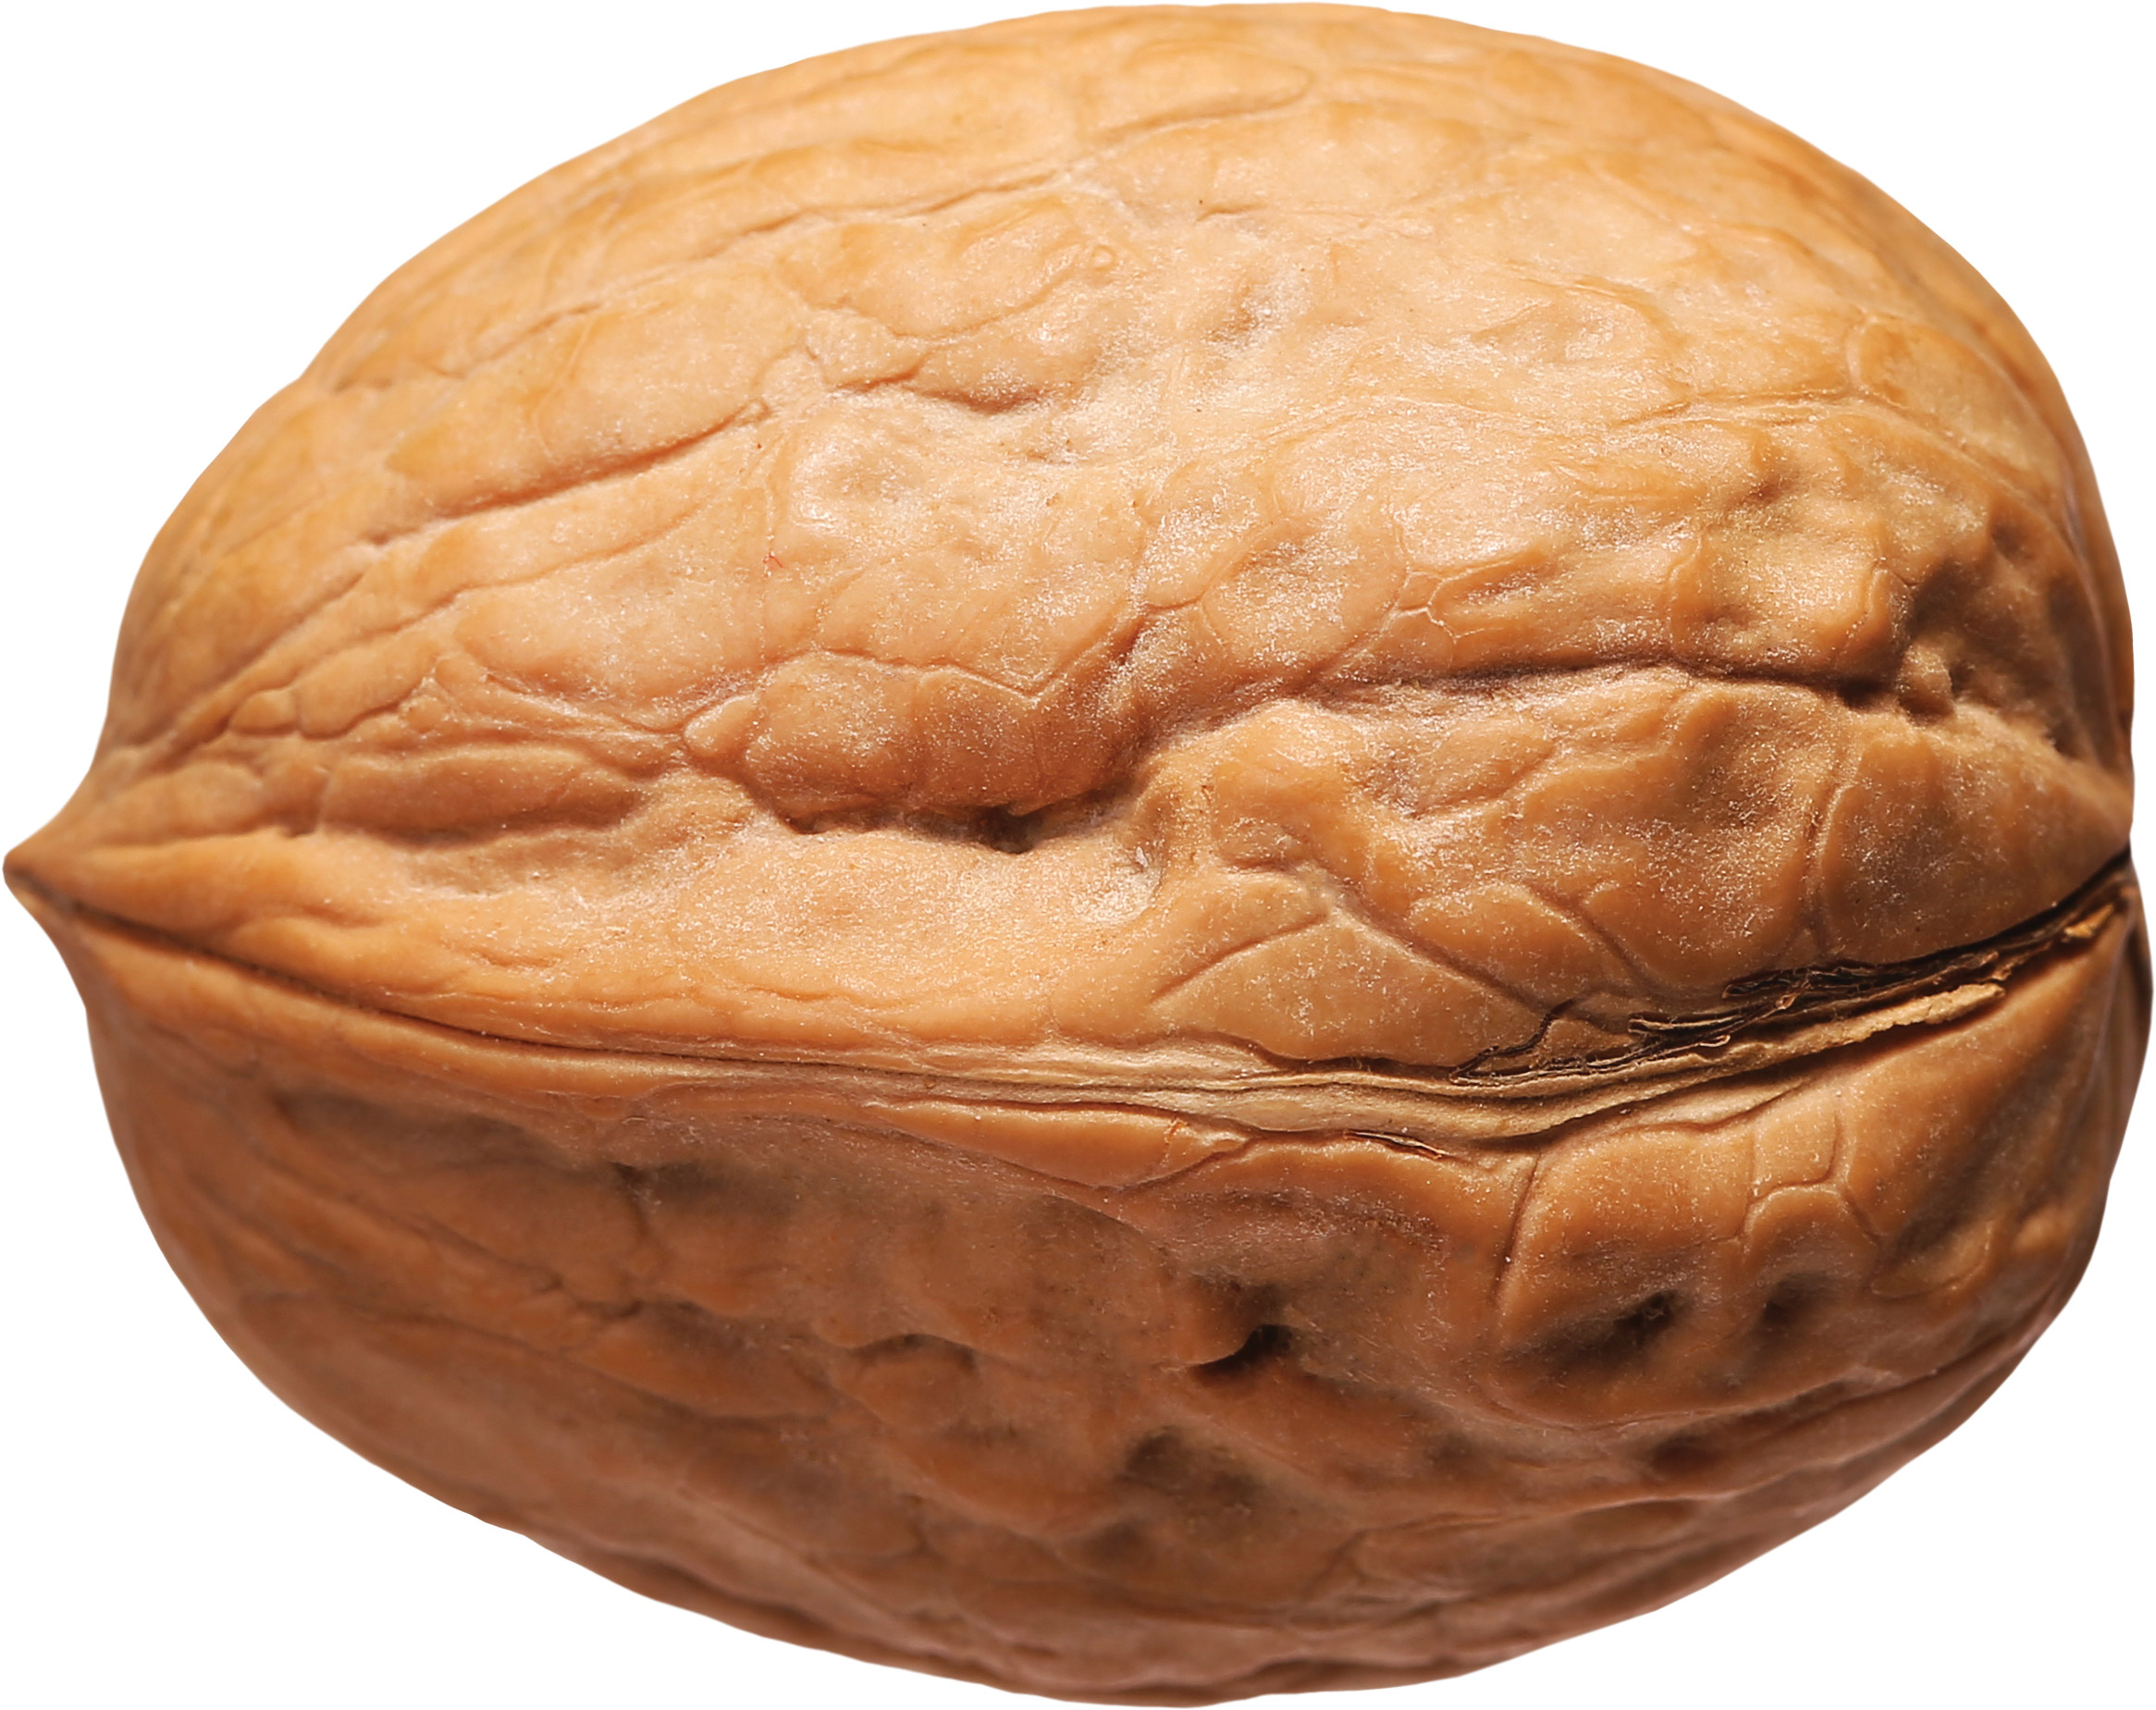 a walnut in its shell